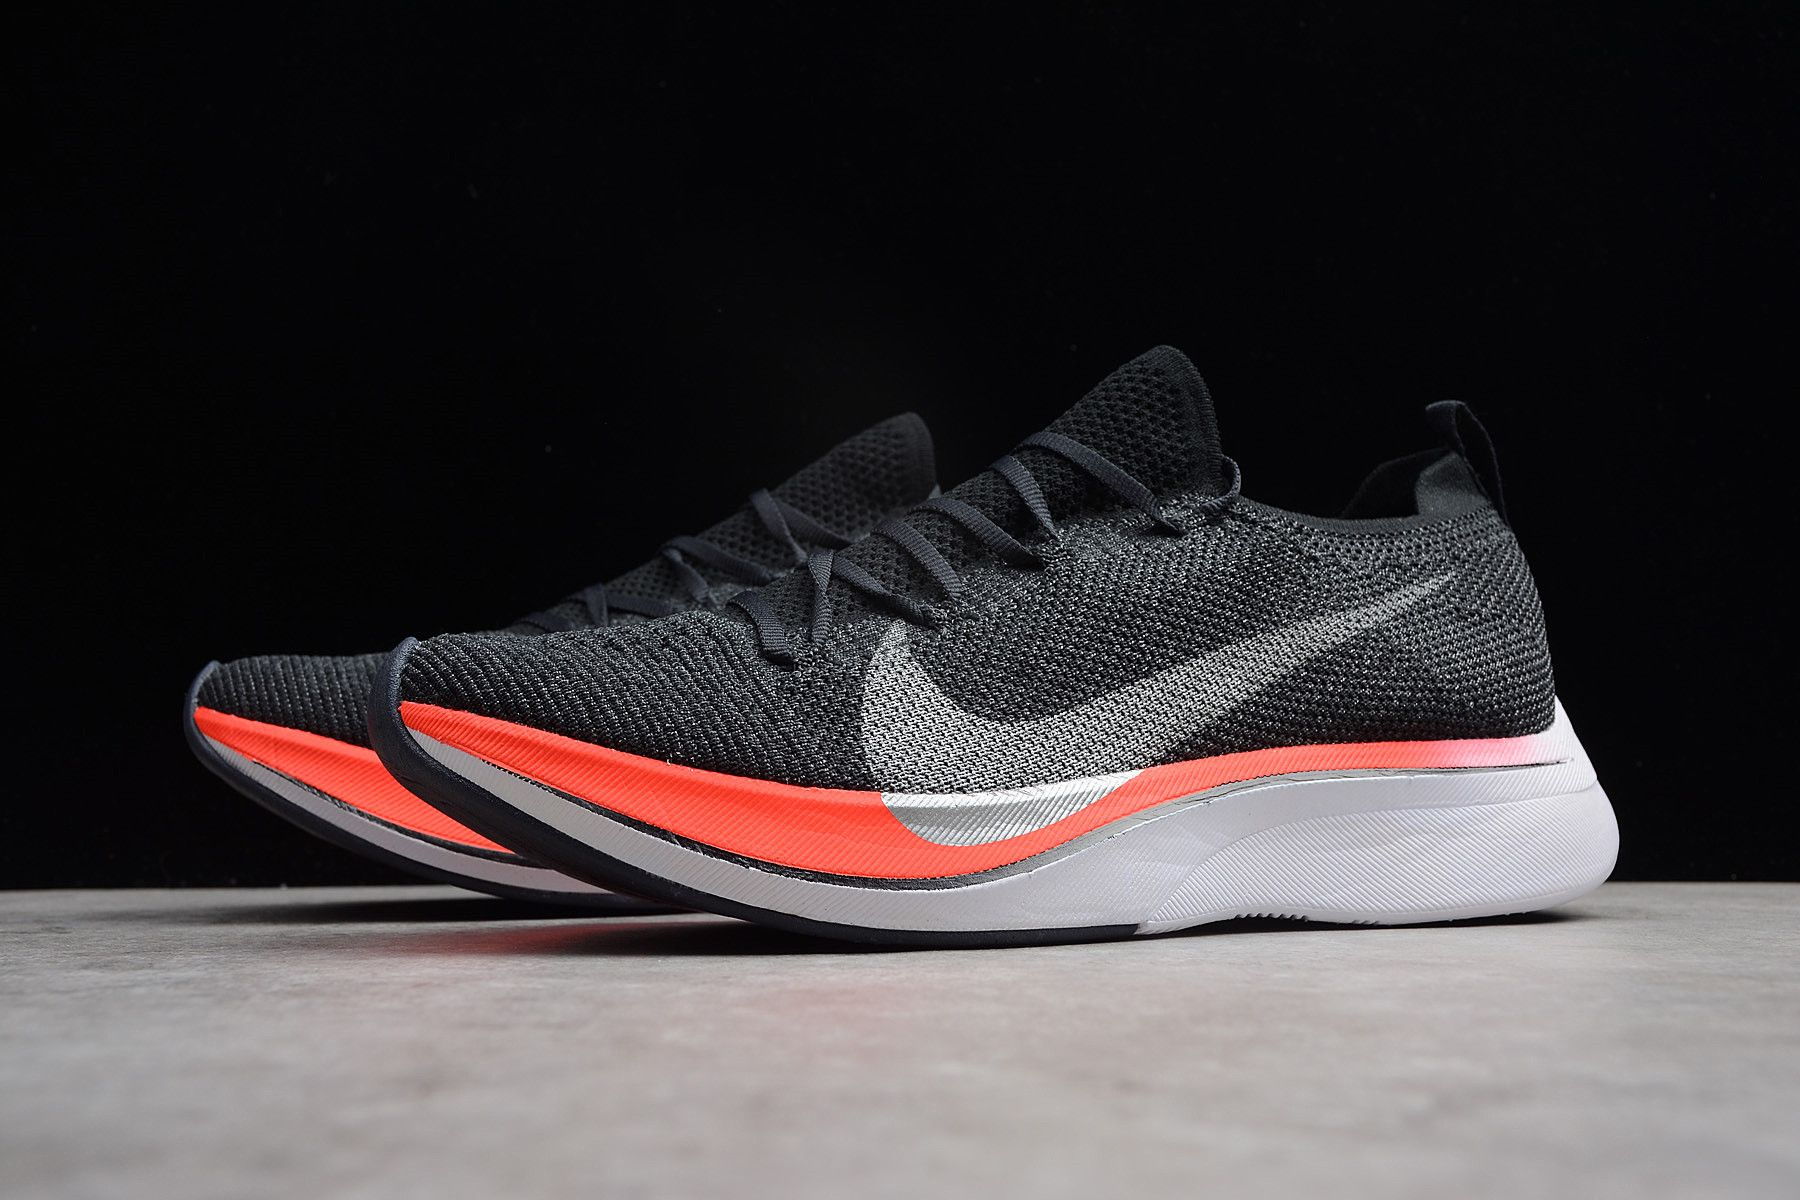 4a7123b35ce Nike Vaporfly 4% Flyknit Blue Fox Black-Bright Crimson AJ3857-400 ...